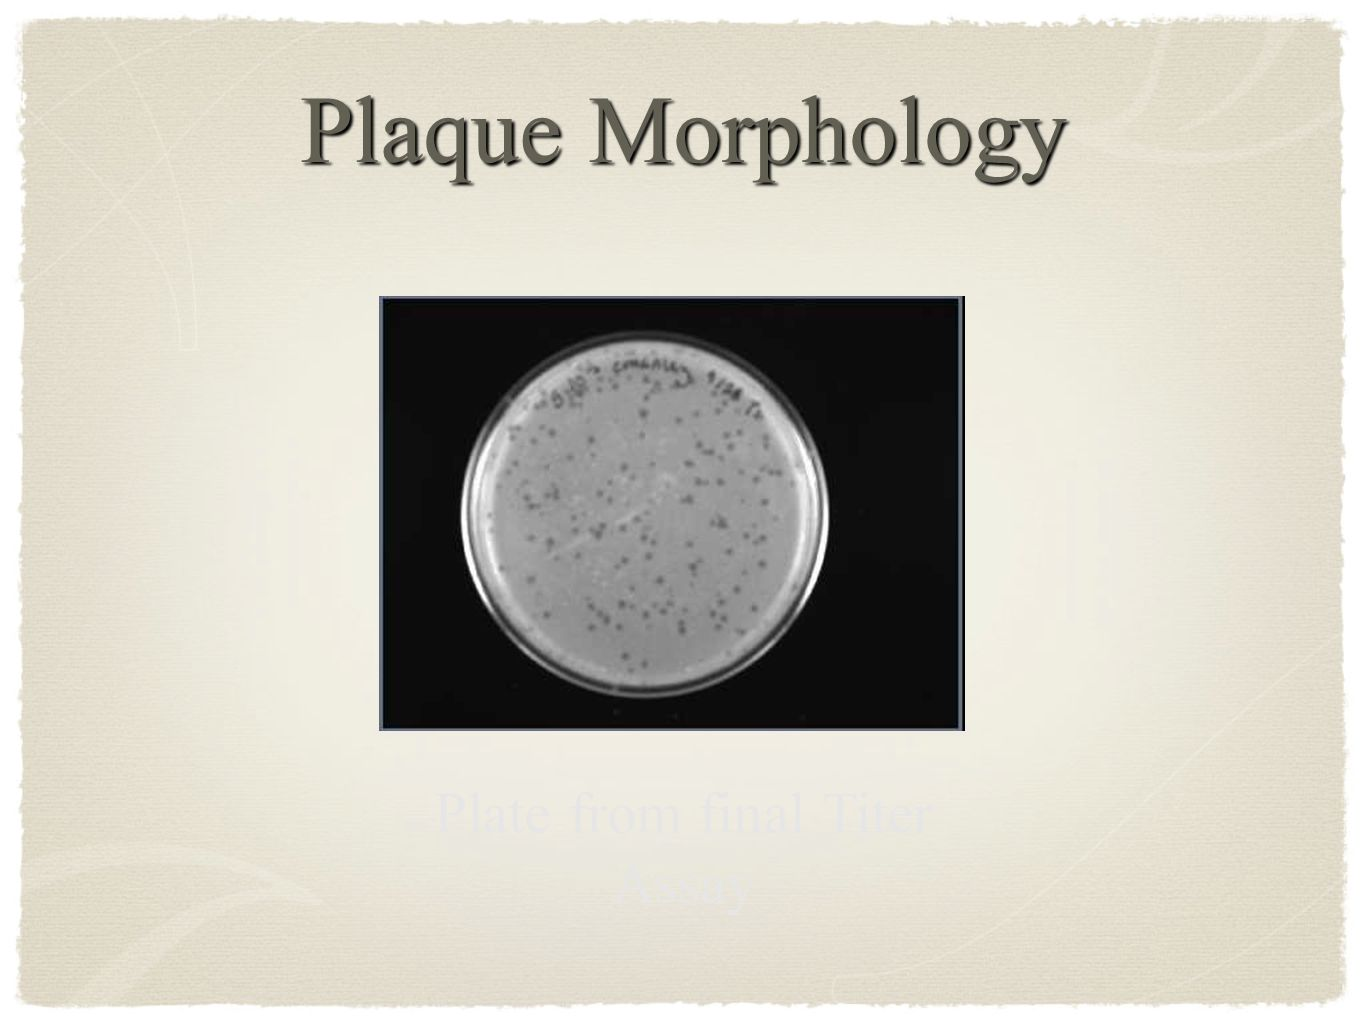 Plaque Morphology Plate from final Titer Assay